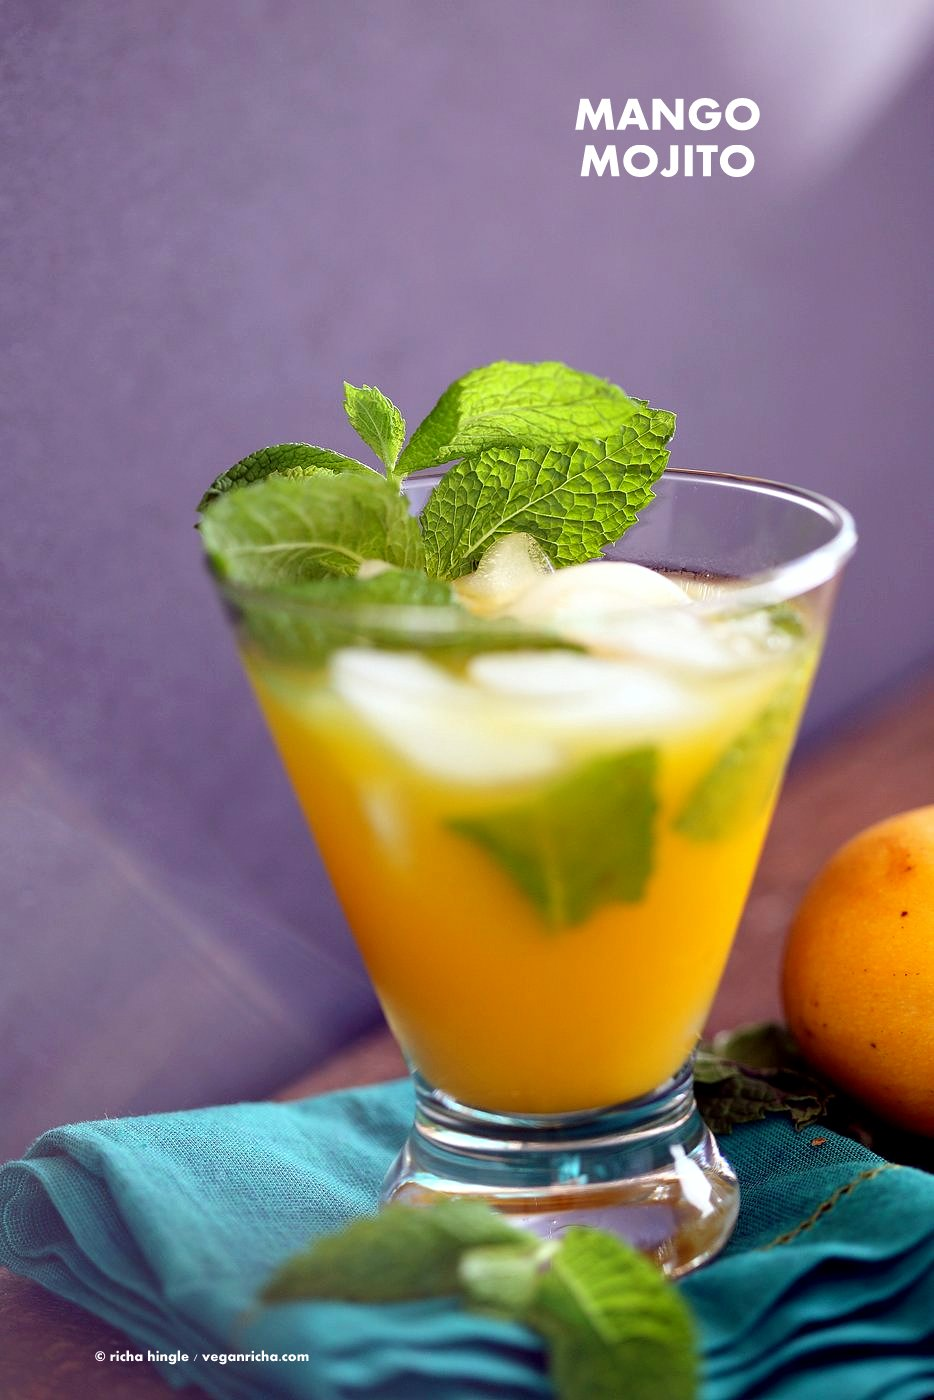 Four fabulous vegan-friendly party drinks